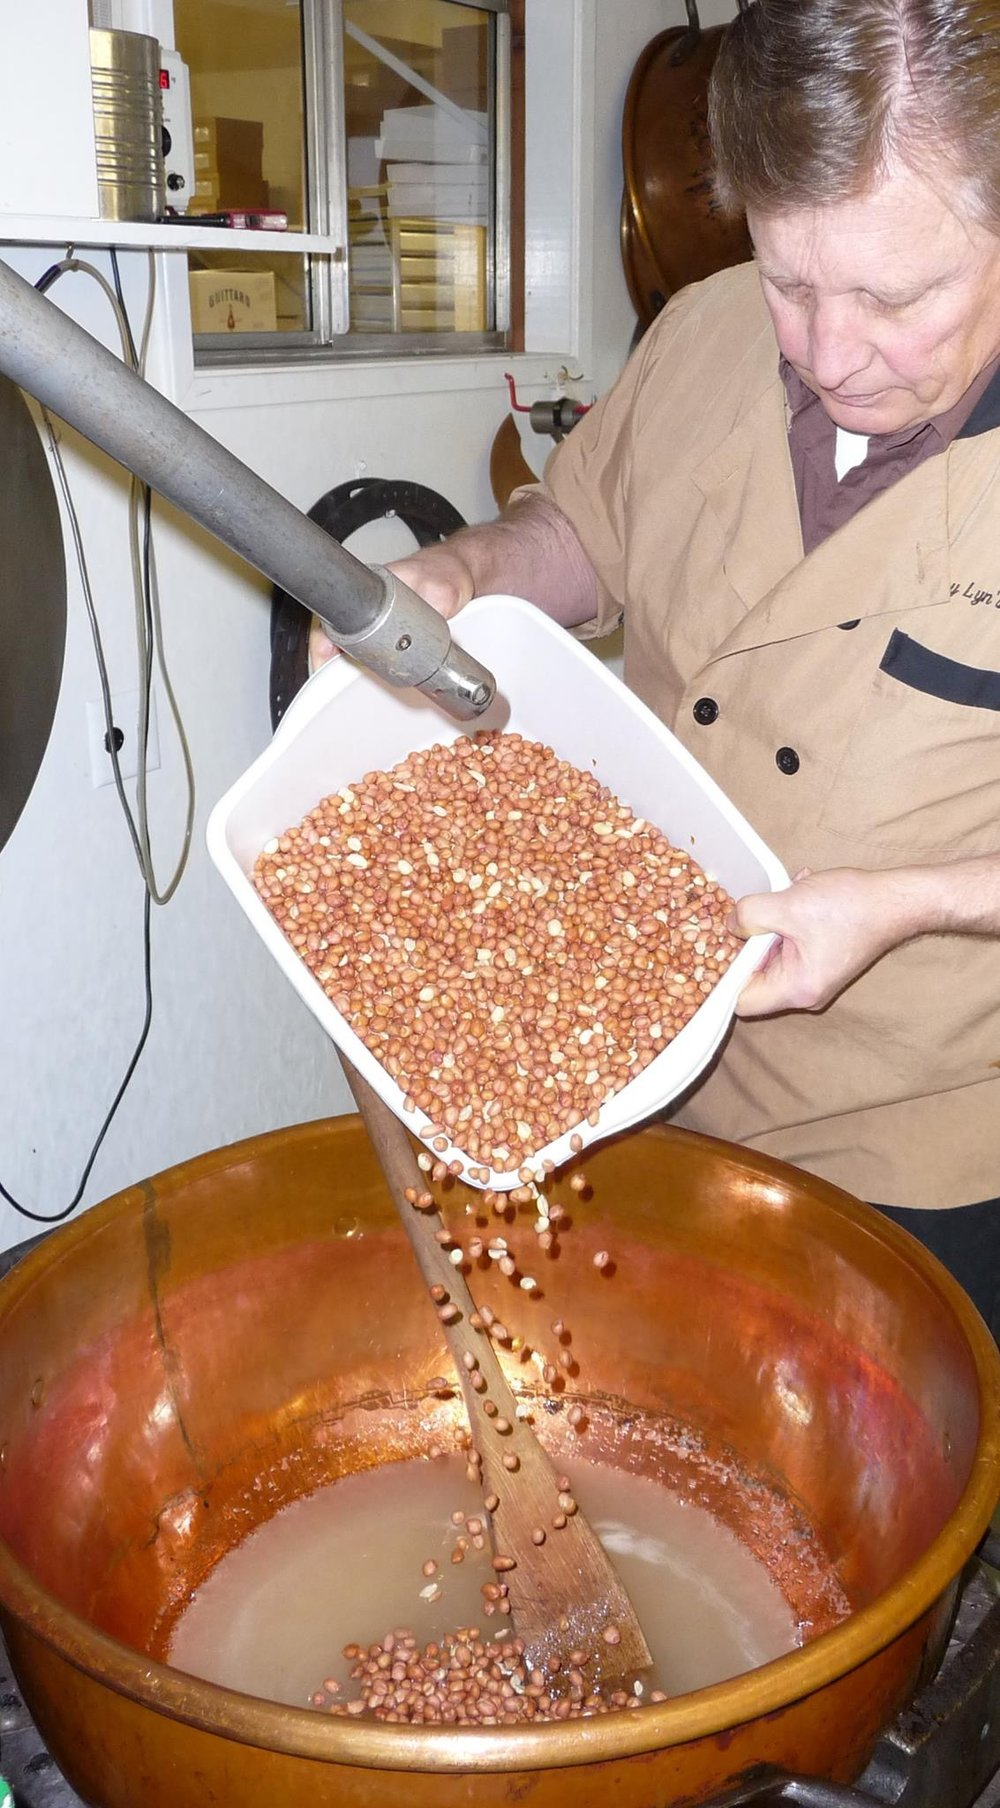 Adding the peanuts to the copper kettle for the Peanut Brittle.